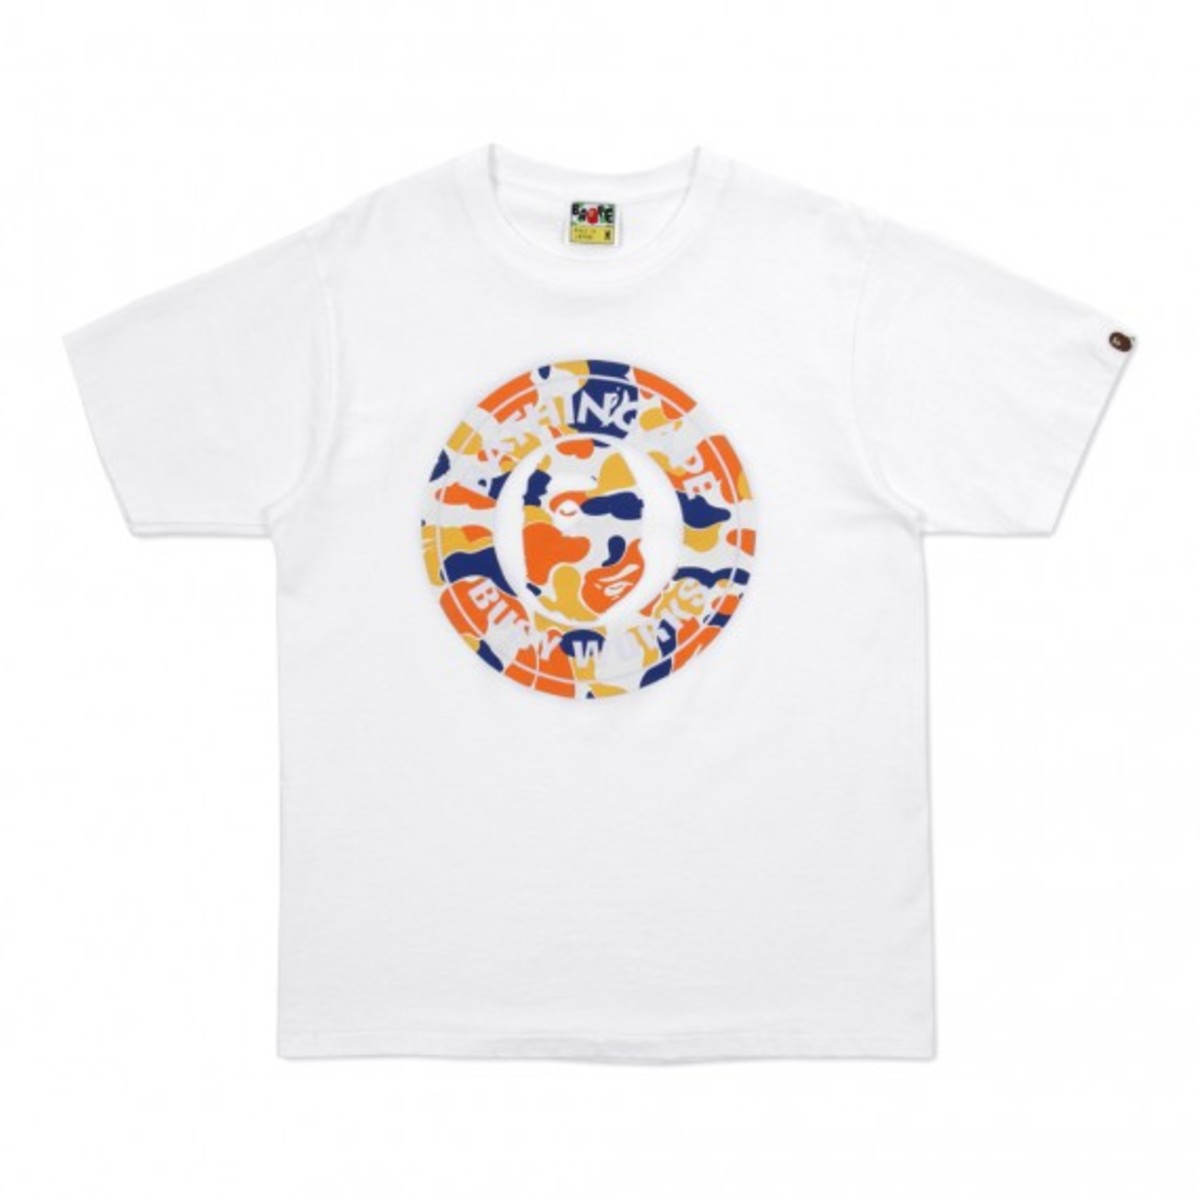 a-bathing-ape-i.t-ezhop-camouflage-collecion-22